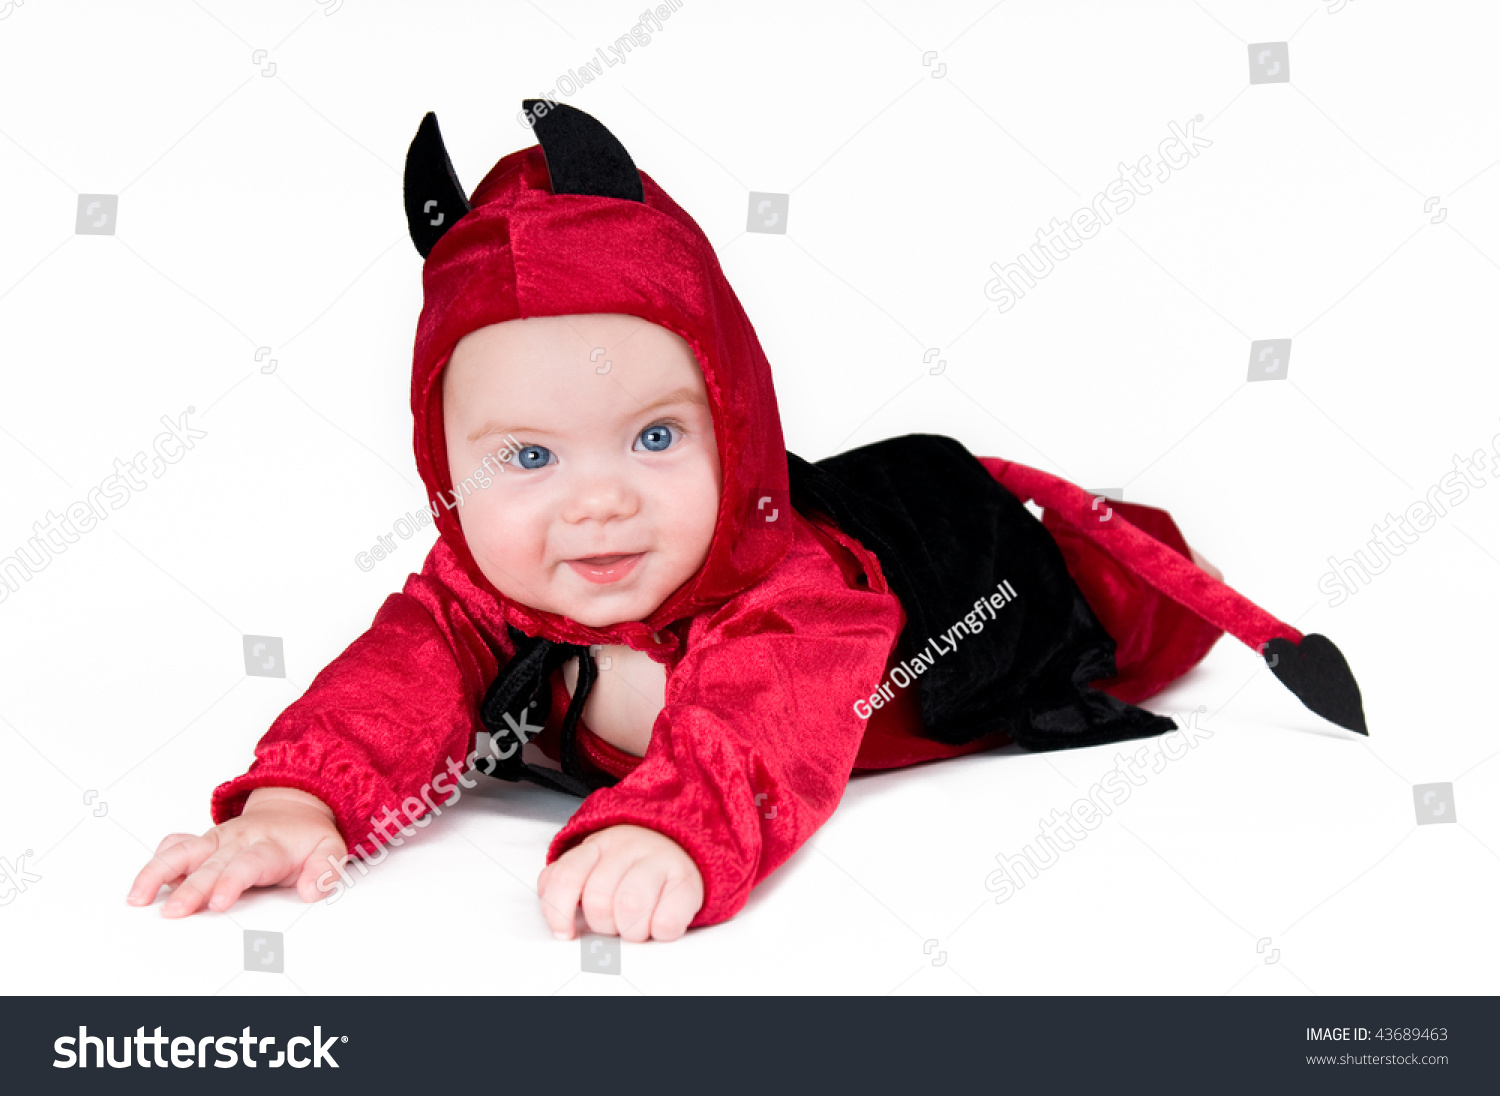 cute baby boy halloween outfit on stock photo (edit now) 43689463